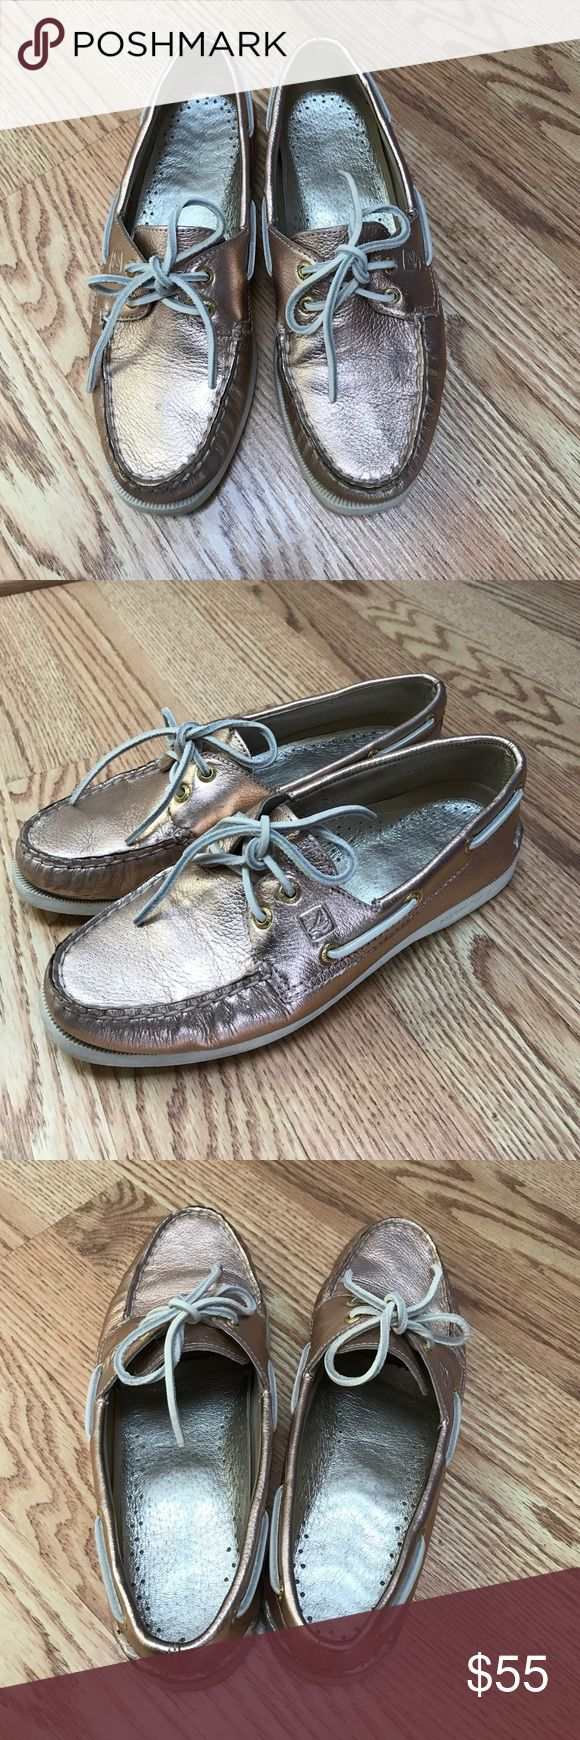 Rose Gold Sperry's Rose gold Sperry's only worn once in great condition. This color is great for Spring! Metallic leather upper, leather lining, rubber sole. Sperry Top-Sider Shoes Flats & Loafers